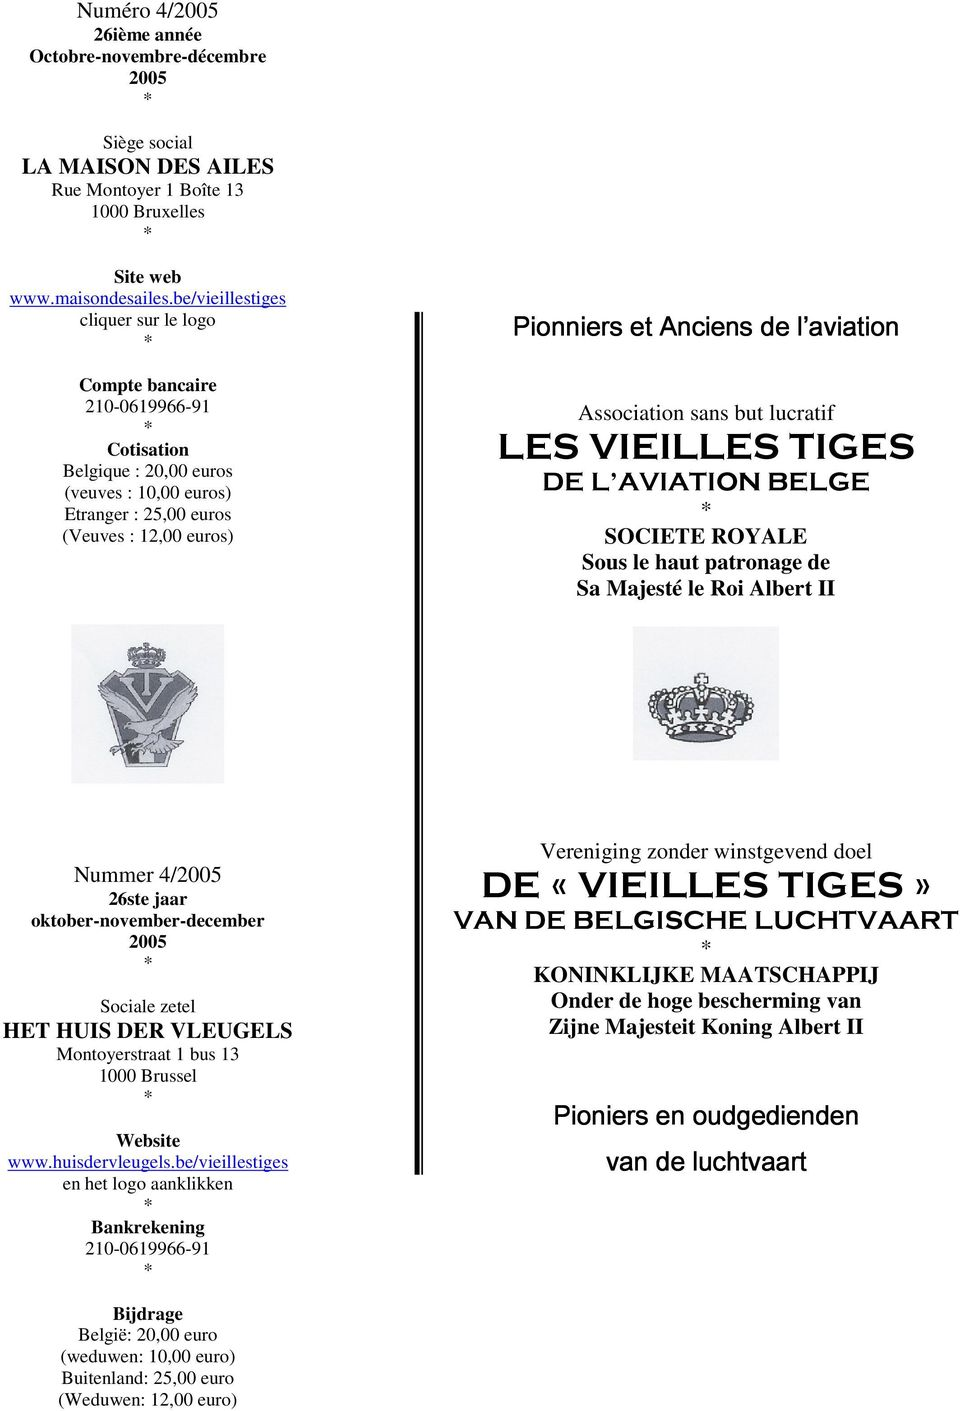 l aviation Association sans but lucratif LES VIEILLES TIGES DE L AVIATION BELGE * SOCIETE ROYALE Sous le haut patronage de Sa Majesté le Roi Albert II Nummer 4/2005 26ste jaar